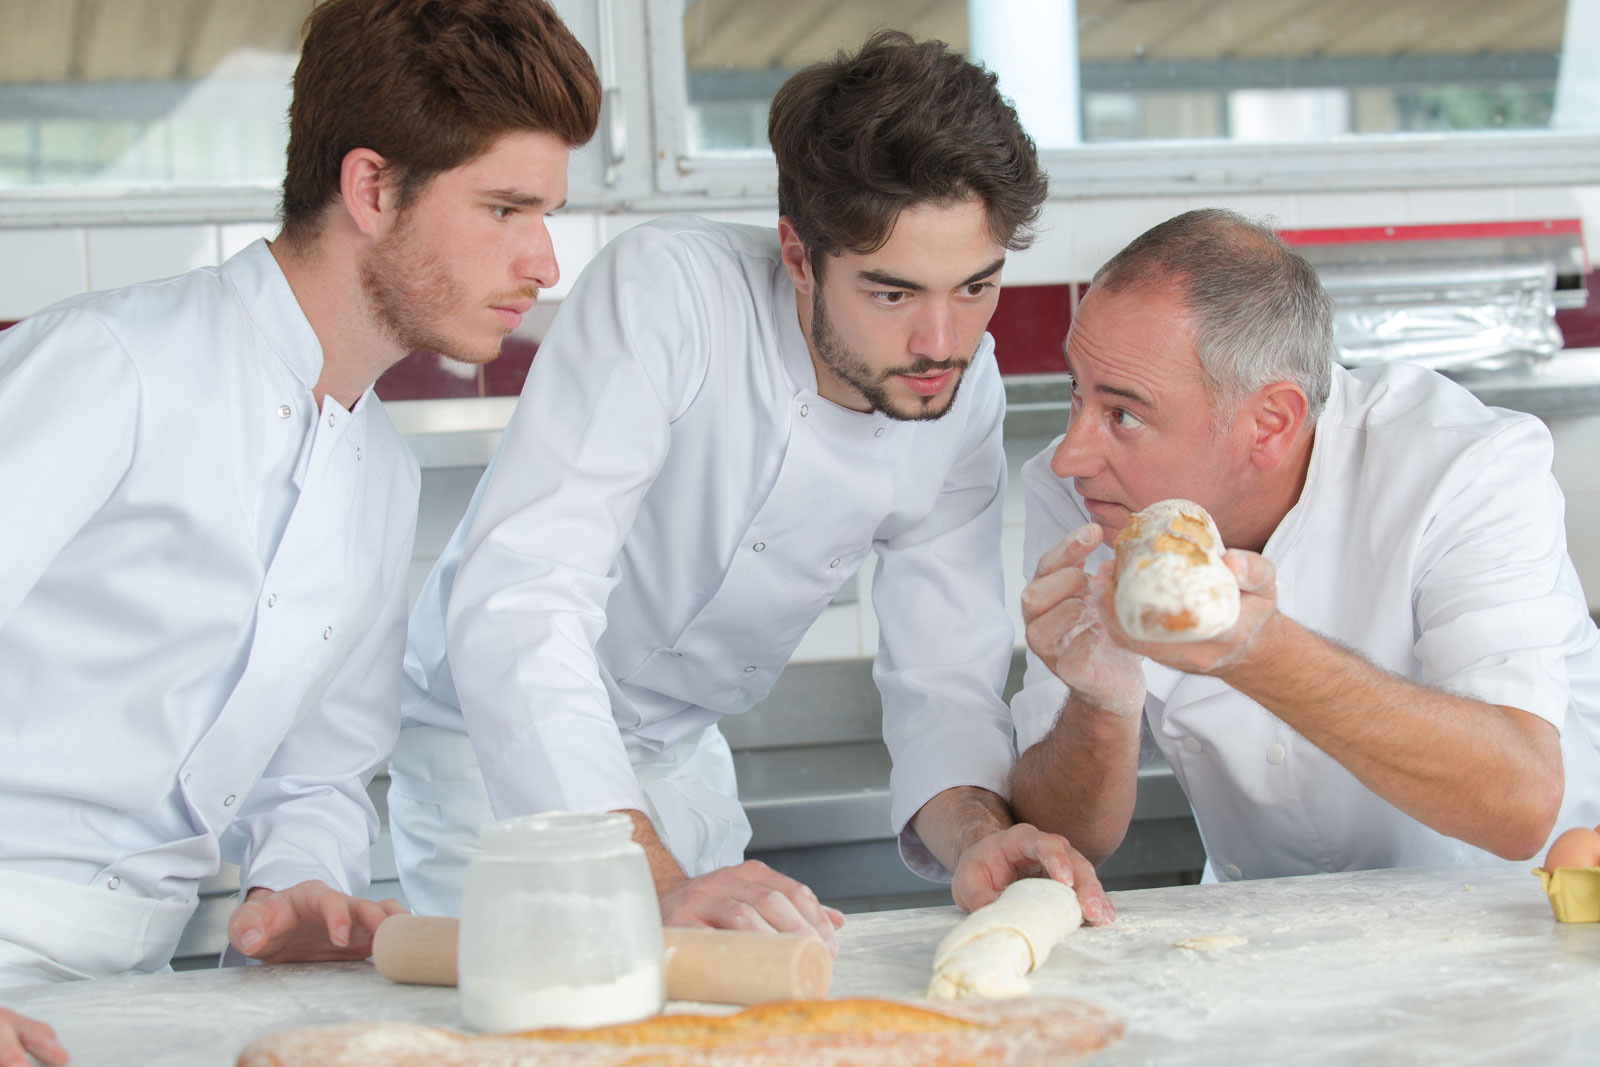 A senior chef holding bread up as two younger chefs examine the composition